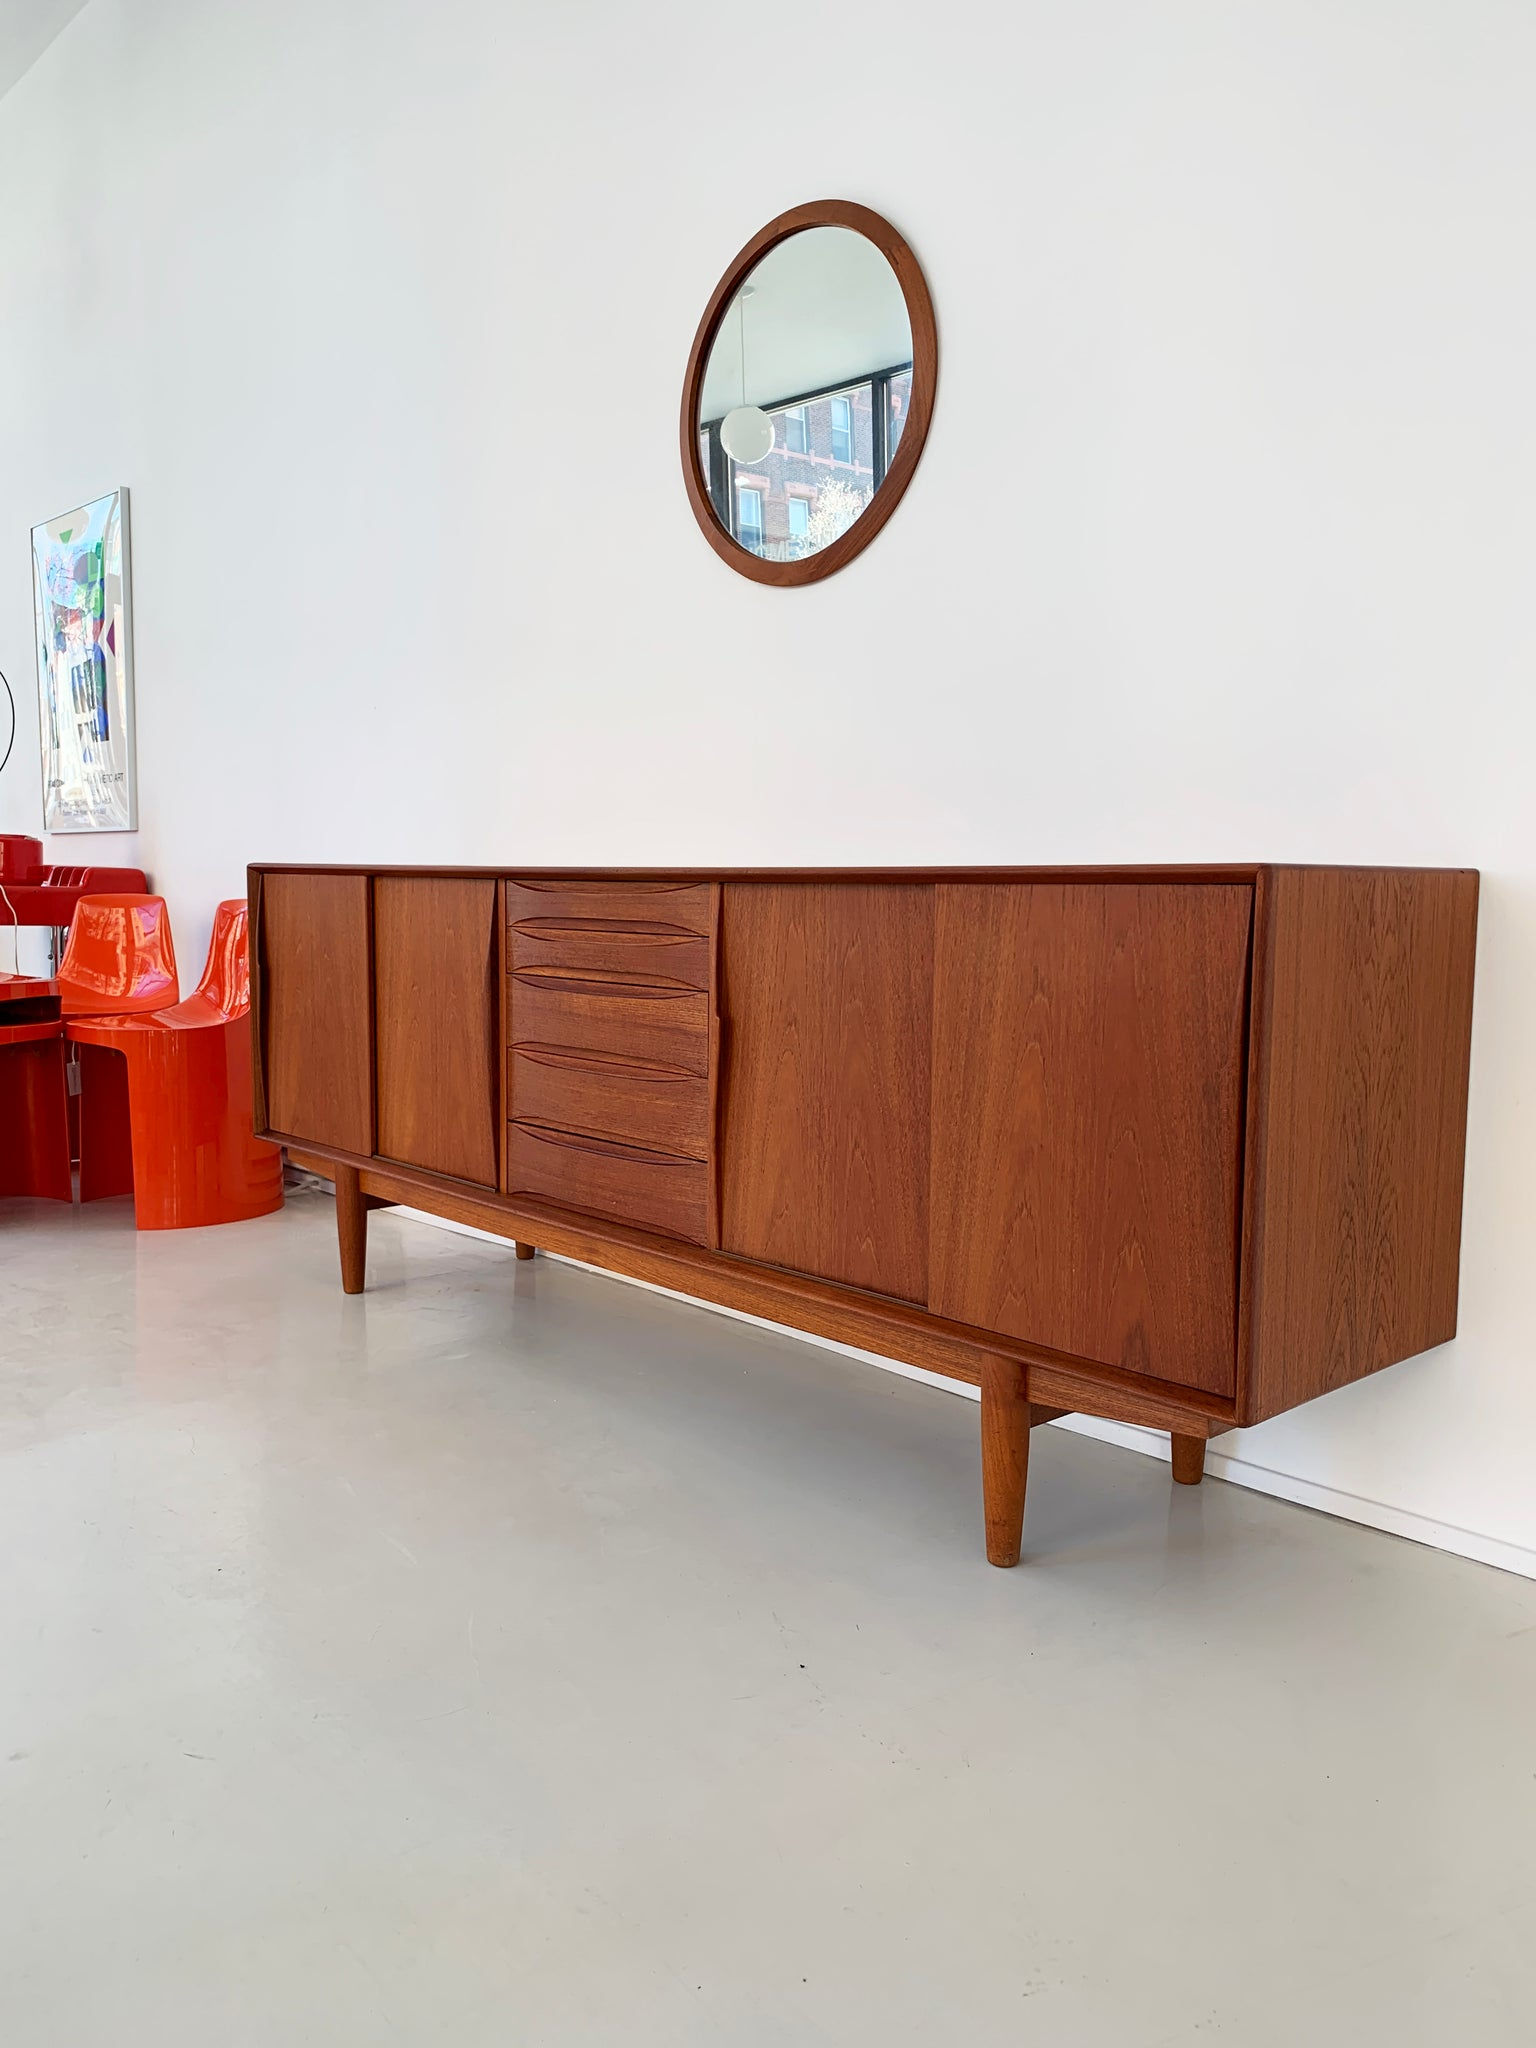 1960s Model 7738 Danish Teak Credenza By Arne Vodder for Skovby